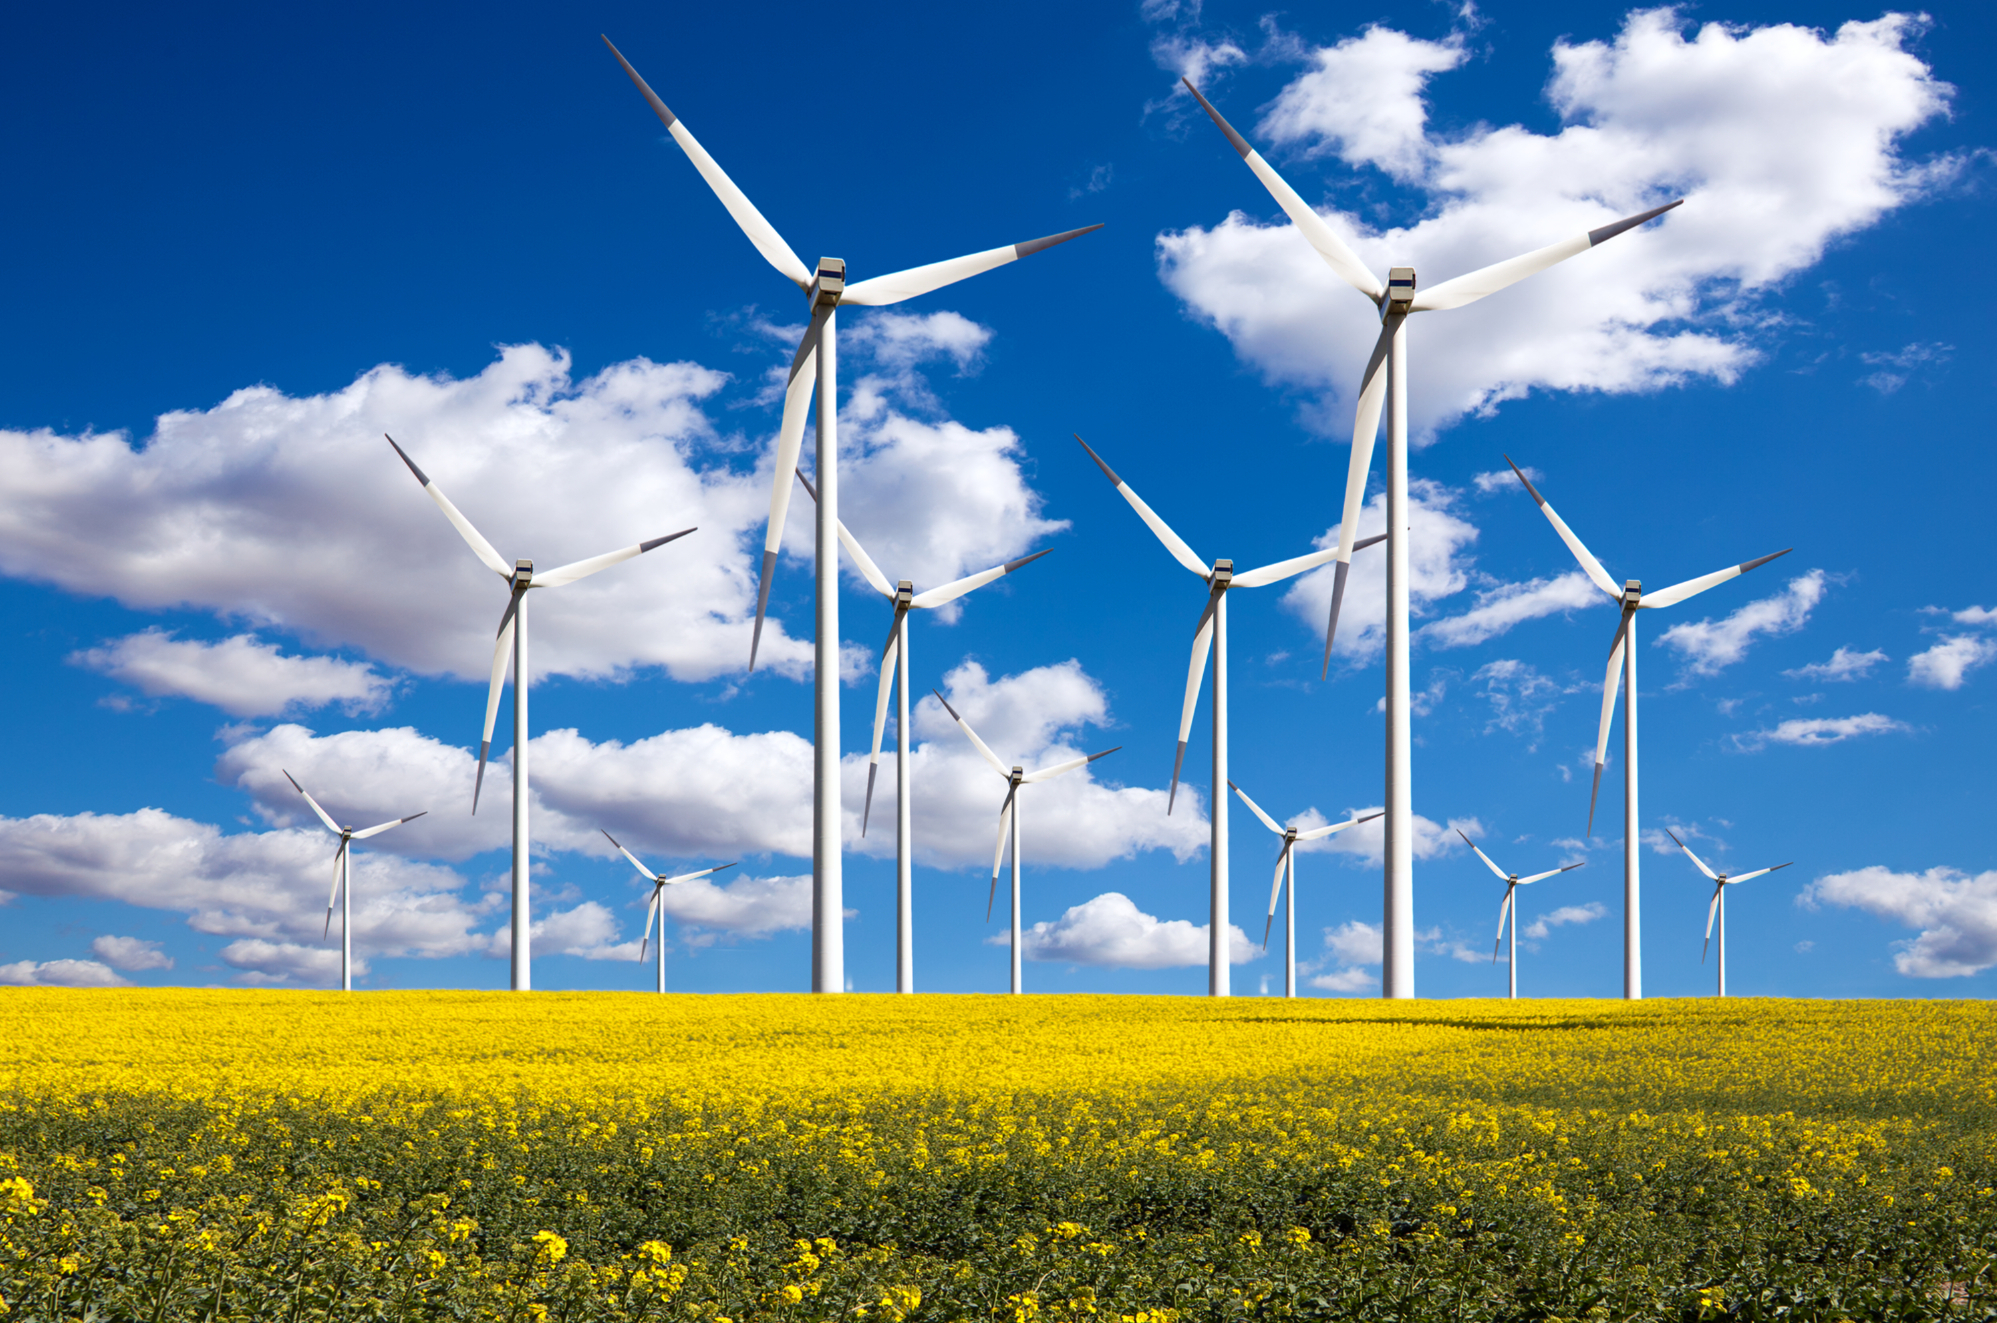 £66m invested in renewable energy projects in Hampshire